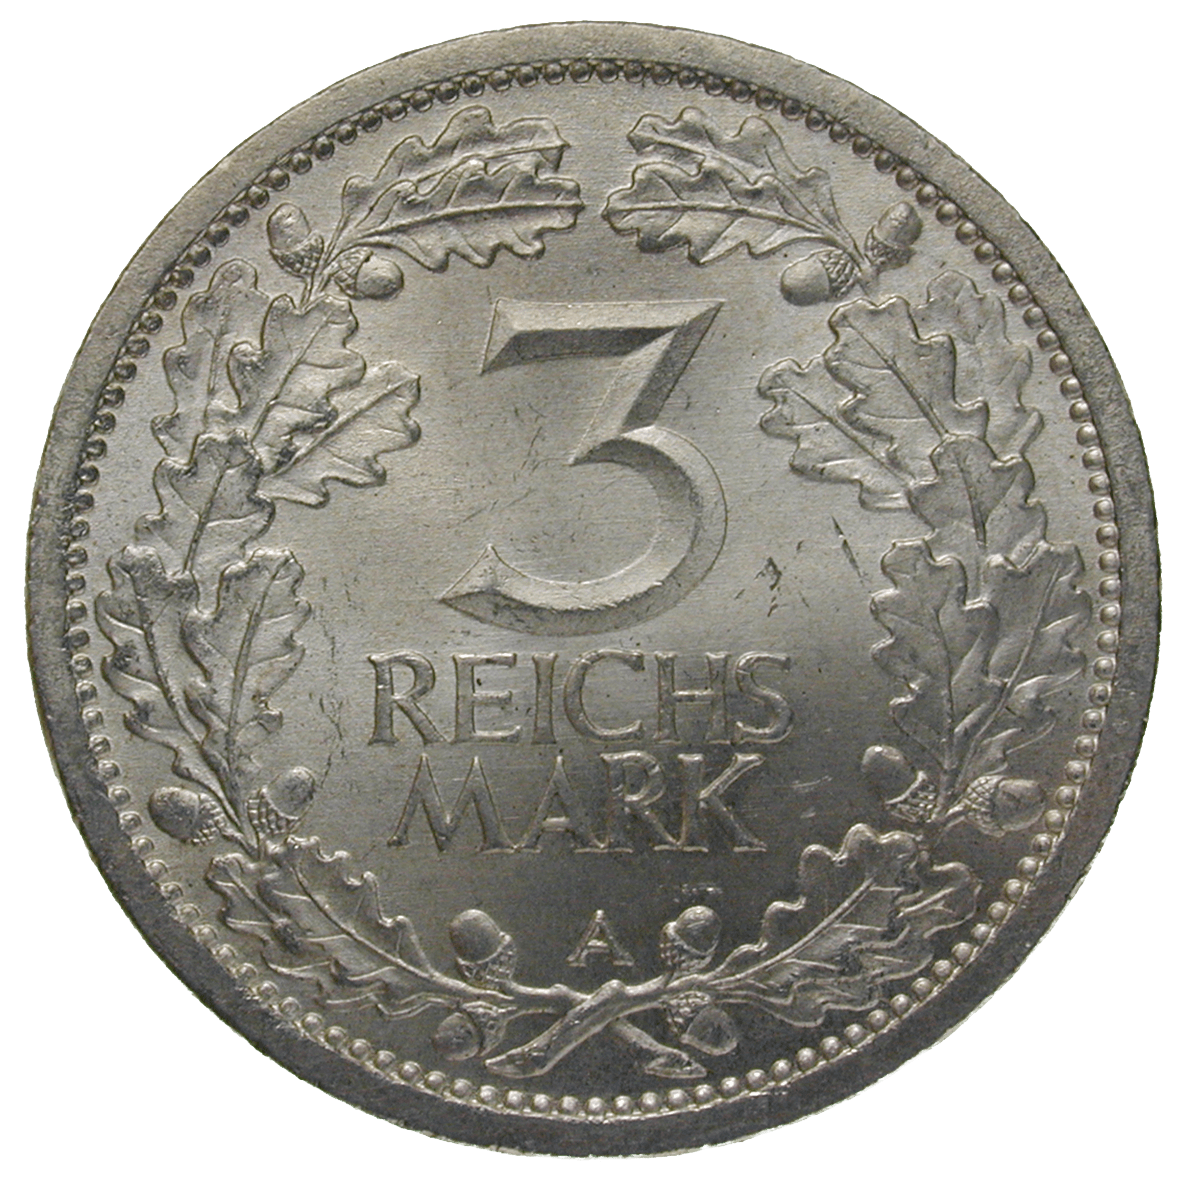 German Empire, Weimar Republic, 3 Reichsmark 1931 (reverse)